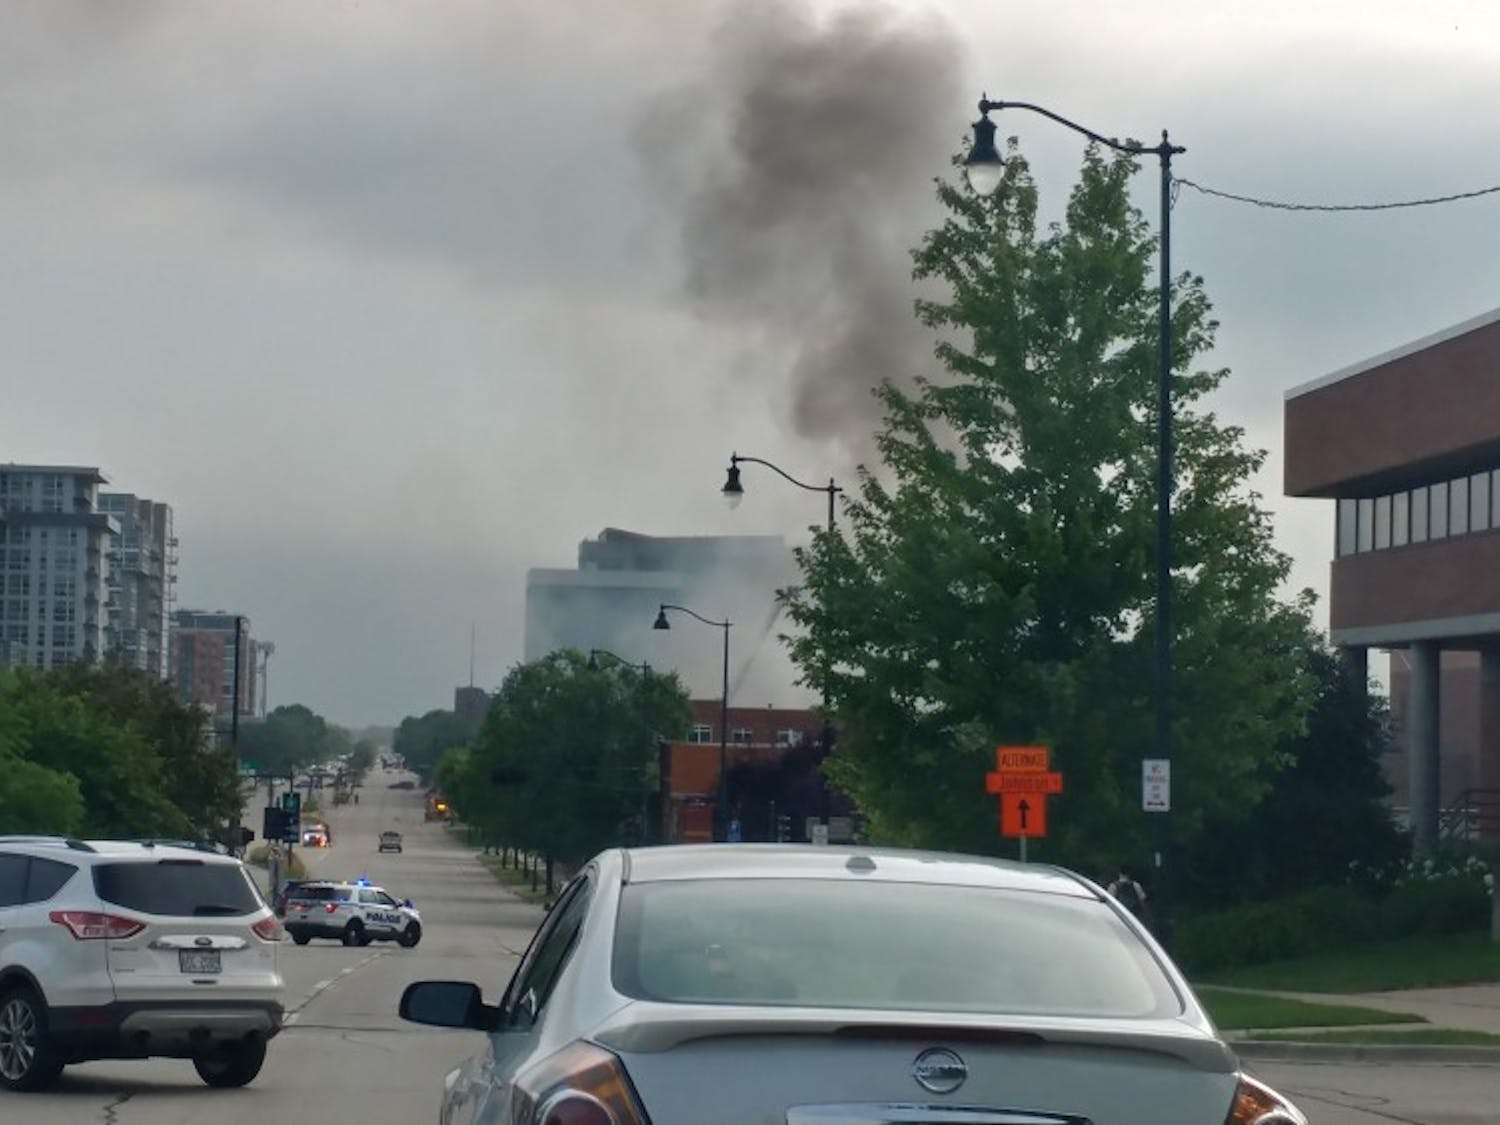 Fires at two MG&E substations resulted in major traffic delays and significant power outages in downtown Madison.